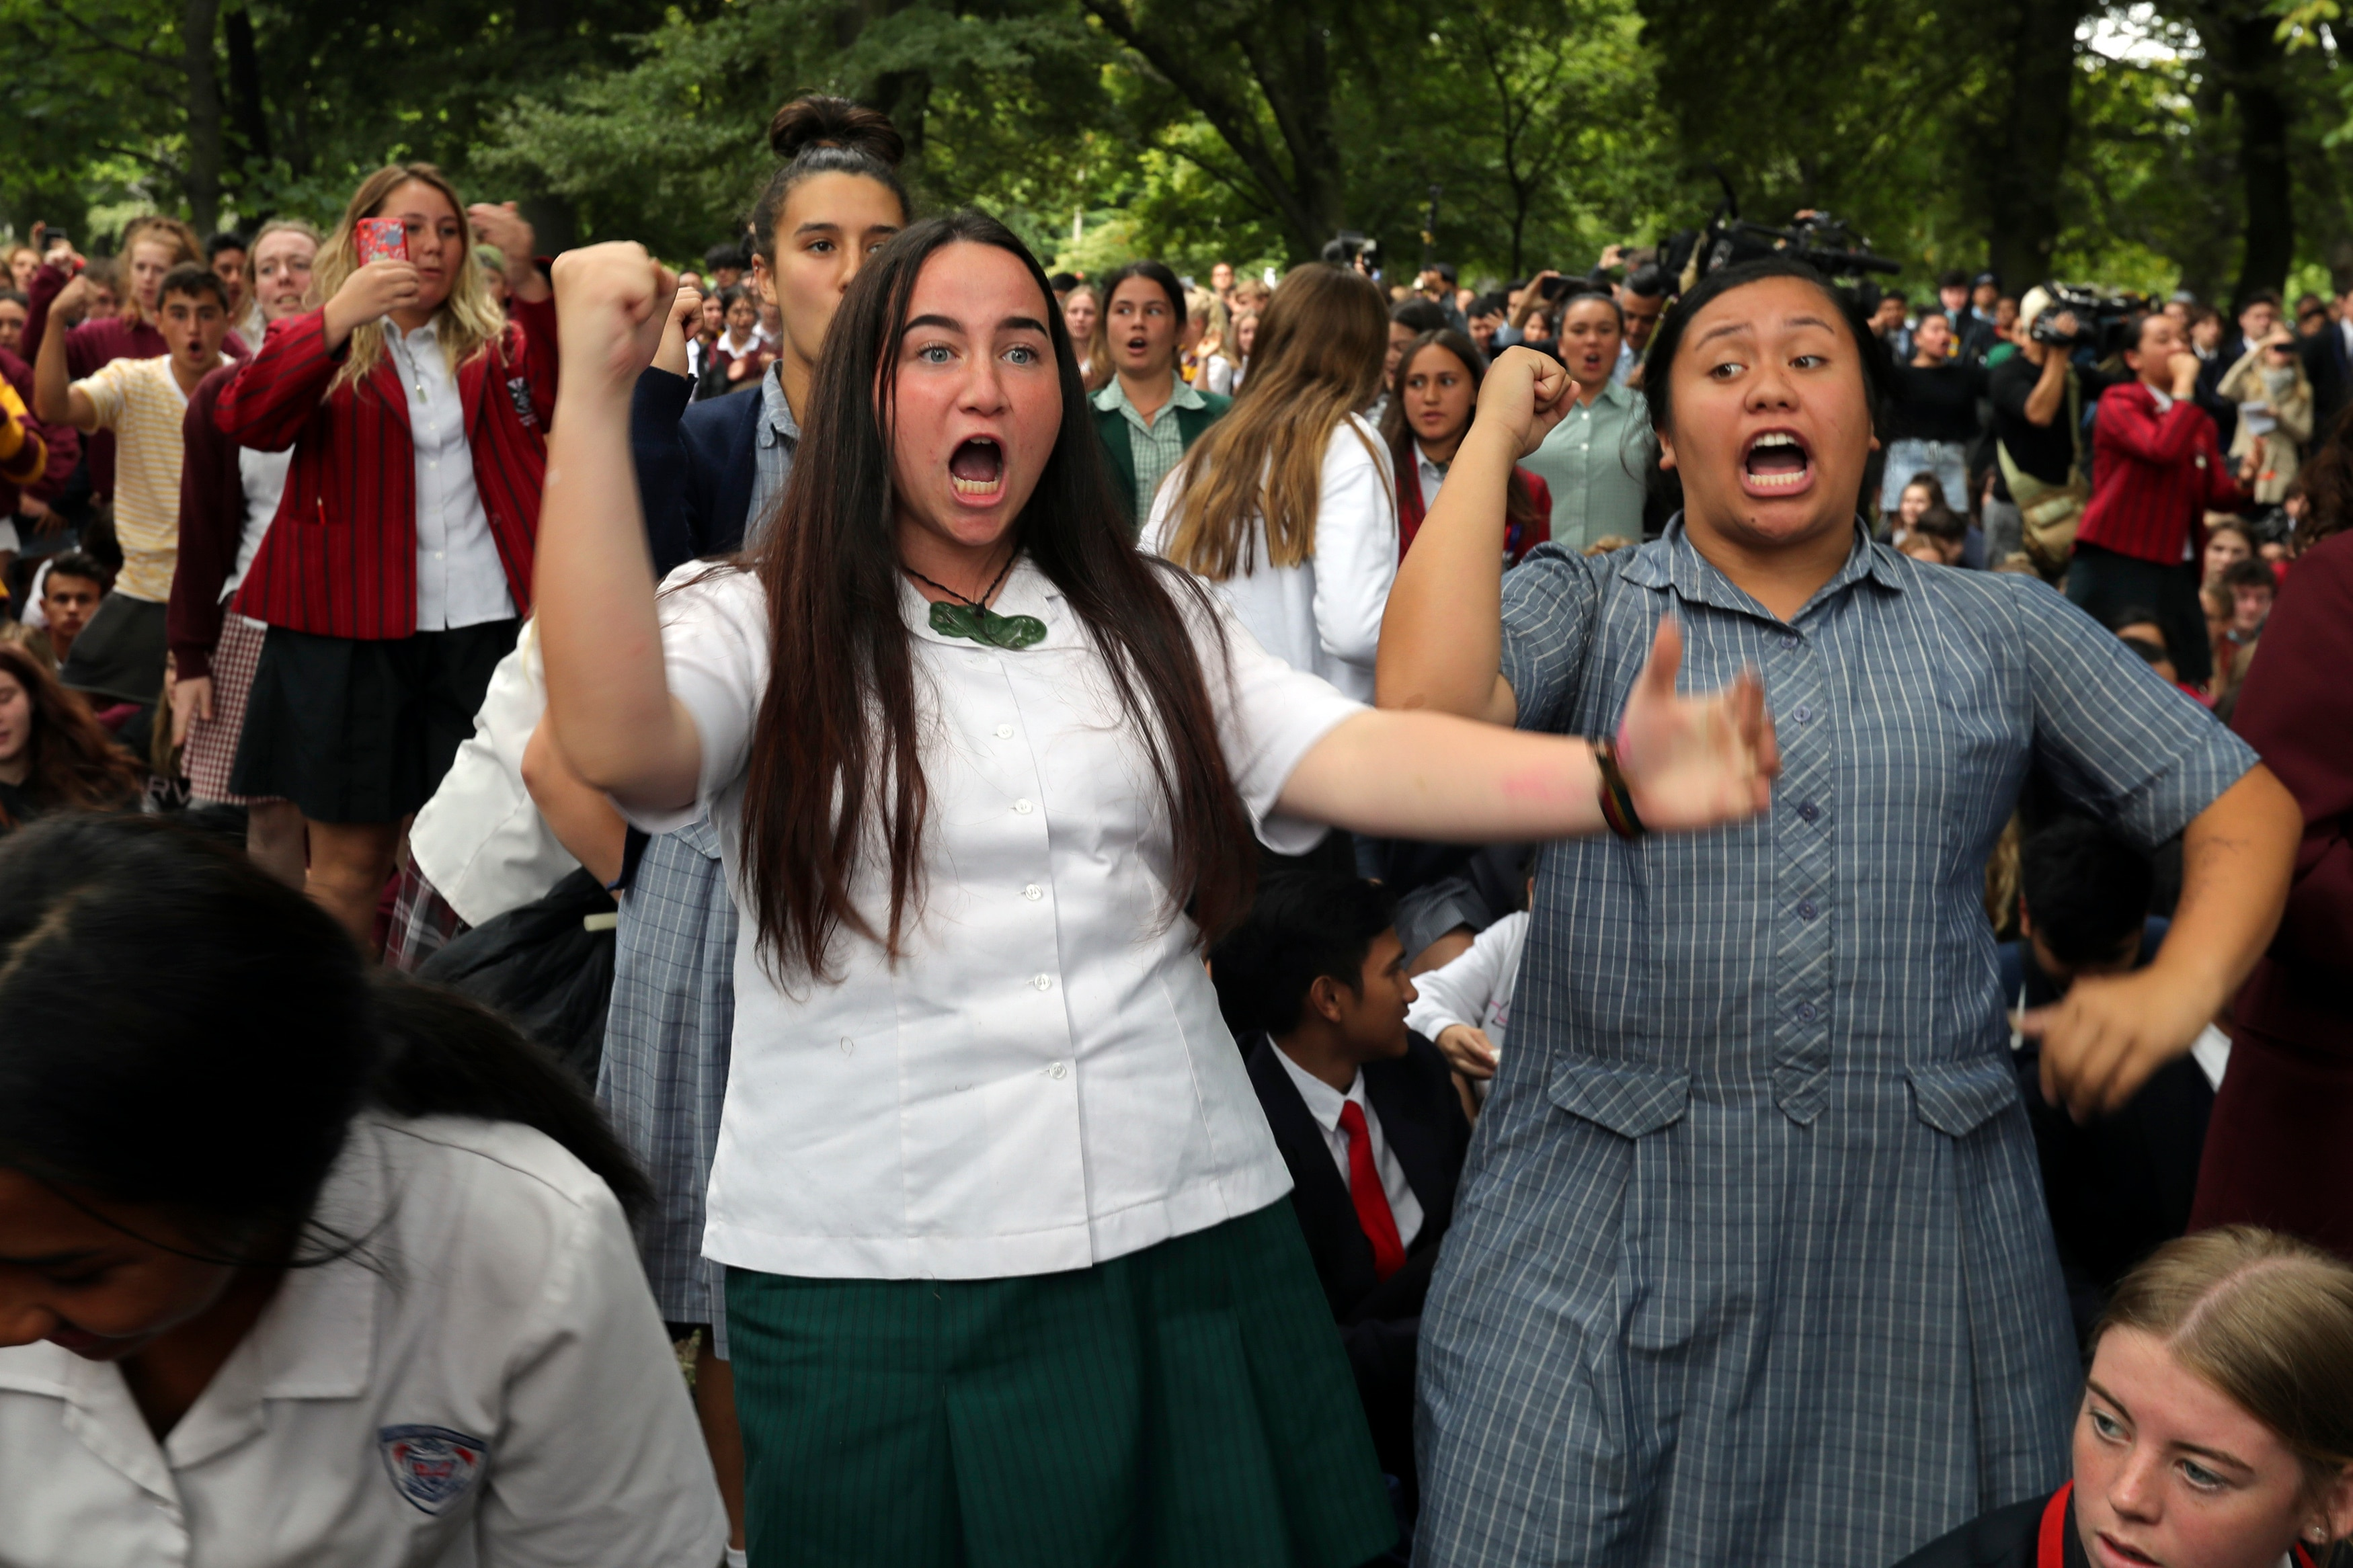 Students perform the Haka during a vigil to commemorate victims of Friday's shooting, outside Masjid Al Noor mosque in Christchurch, New Zealand.